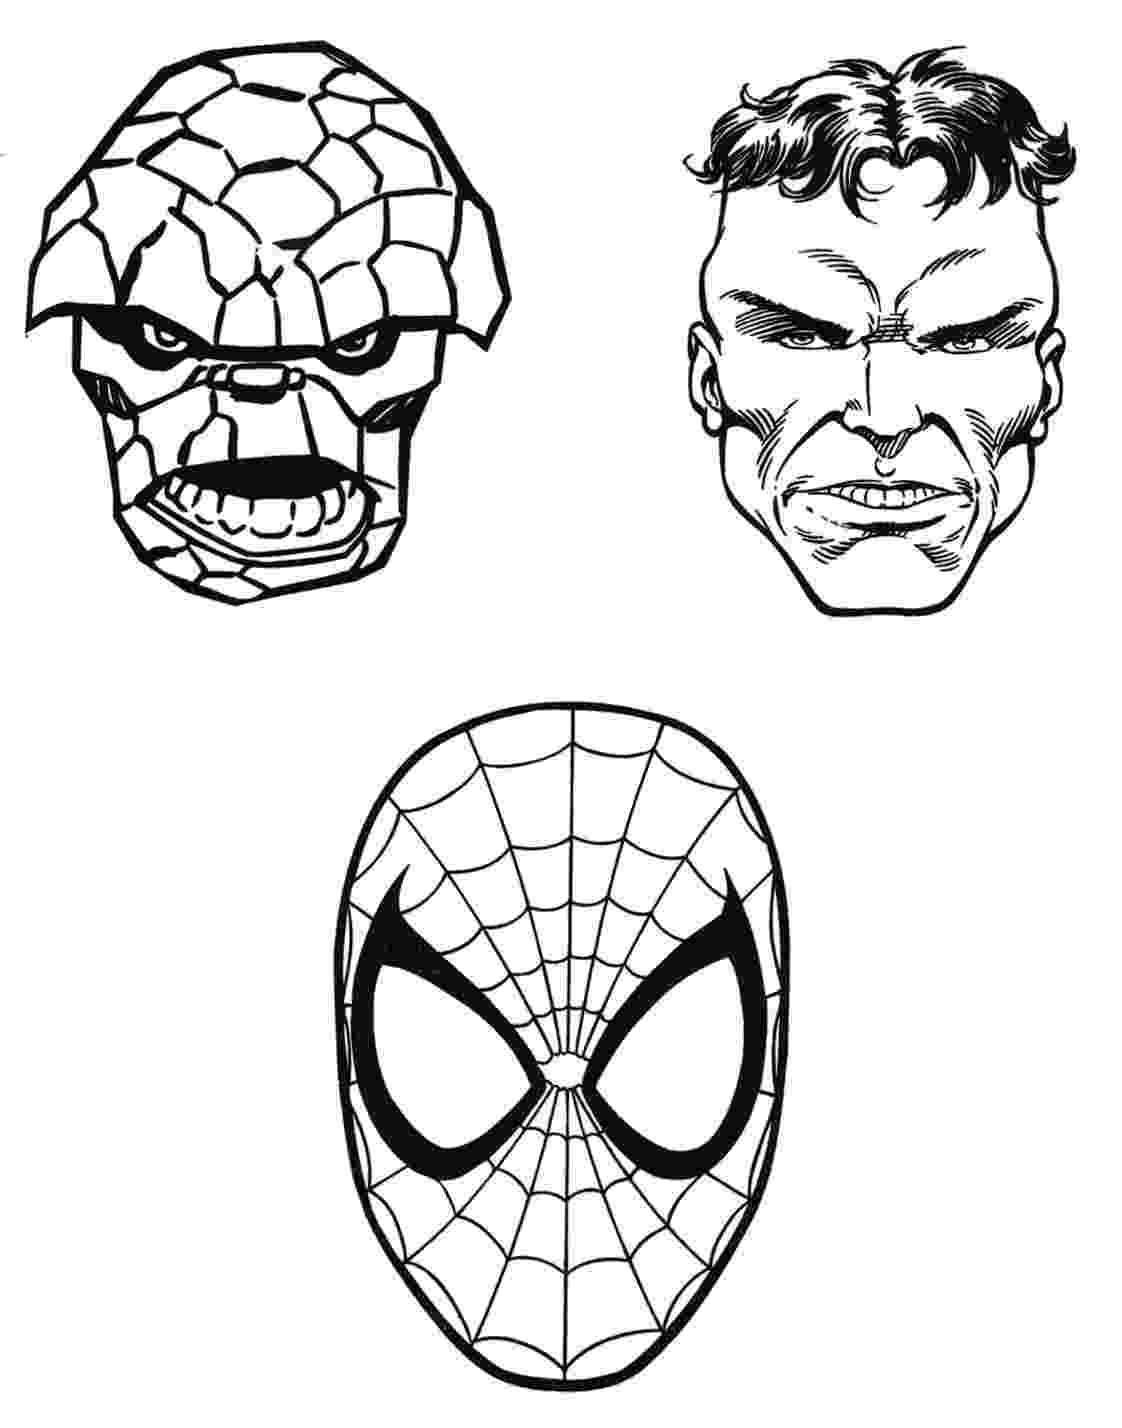 marvel super heroes coloring pages marvel superhero coloring pages getcoloringpagescom coloring pages super heroes marvel 1 1